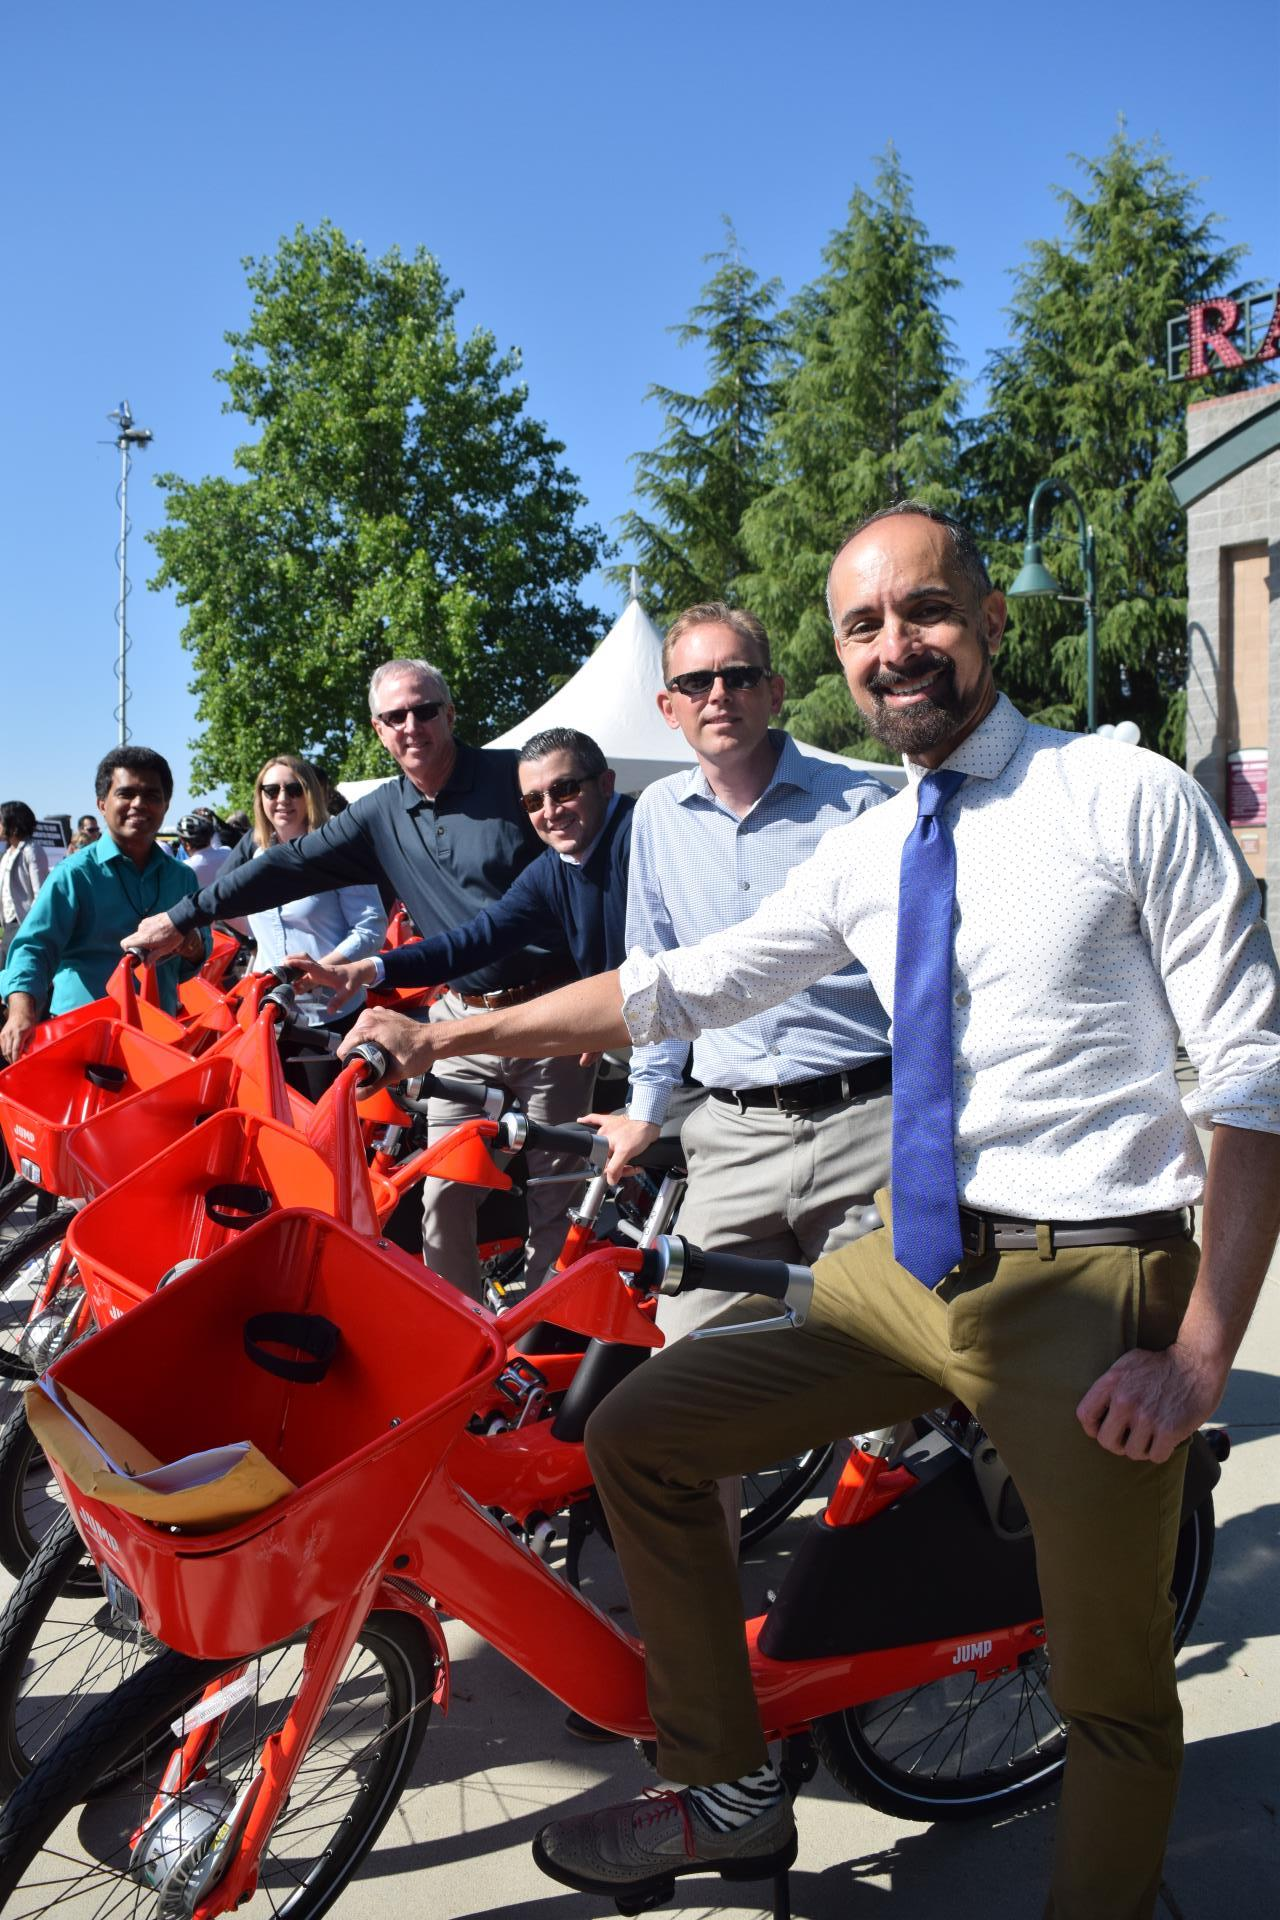 JUMPbike picture with mayor and city staff